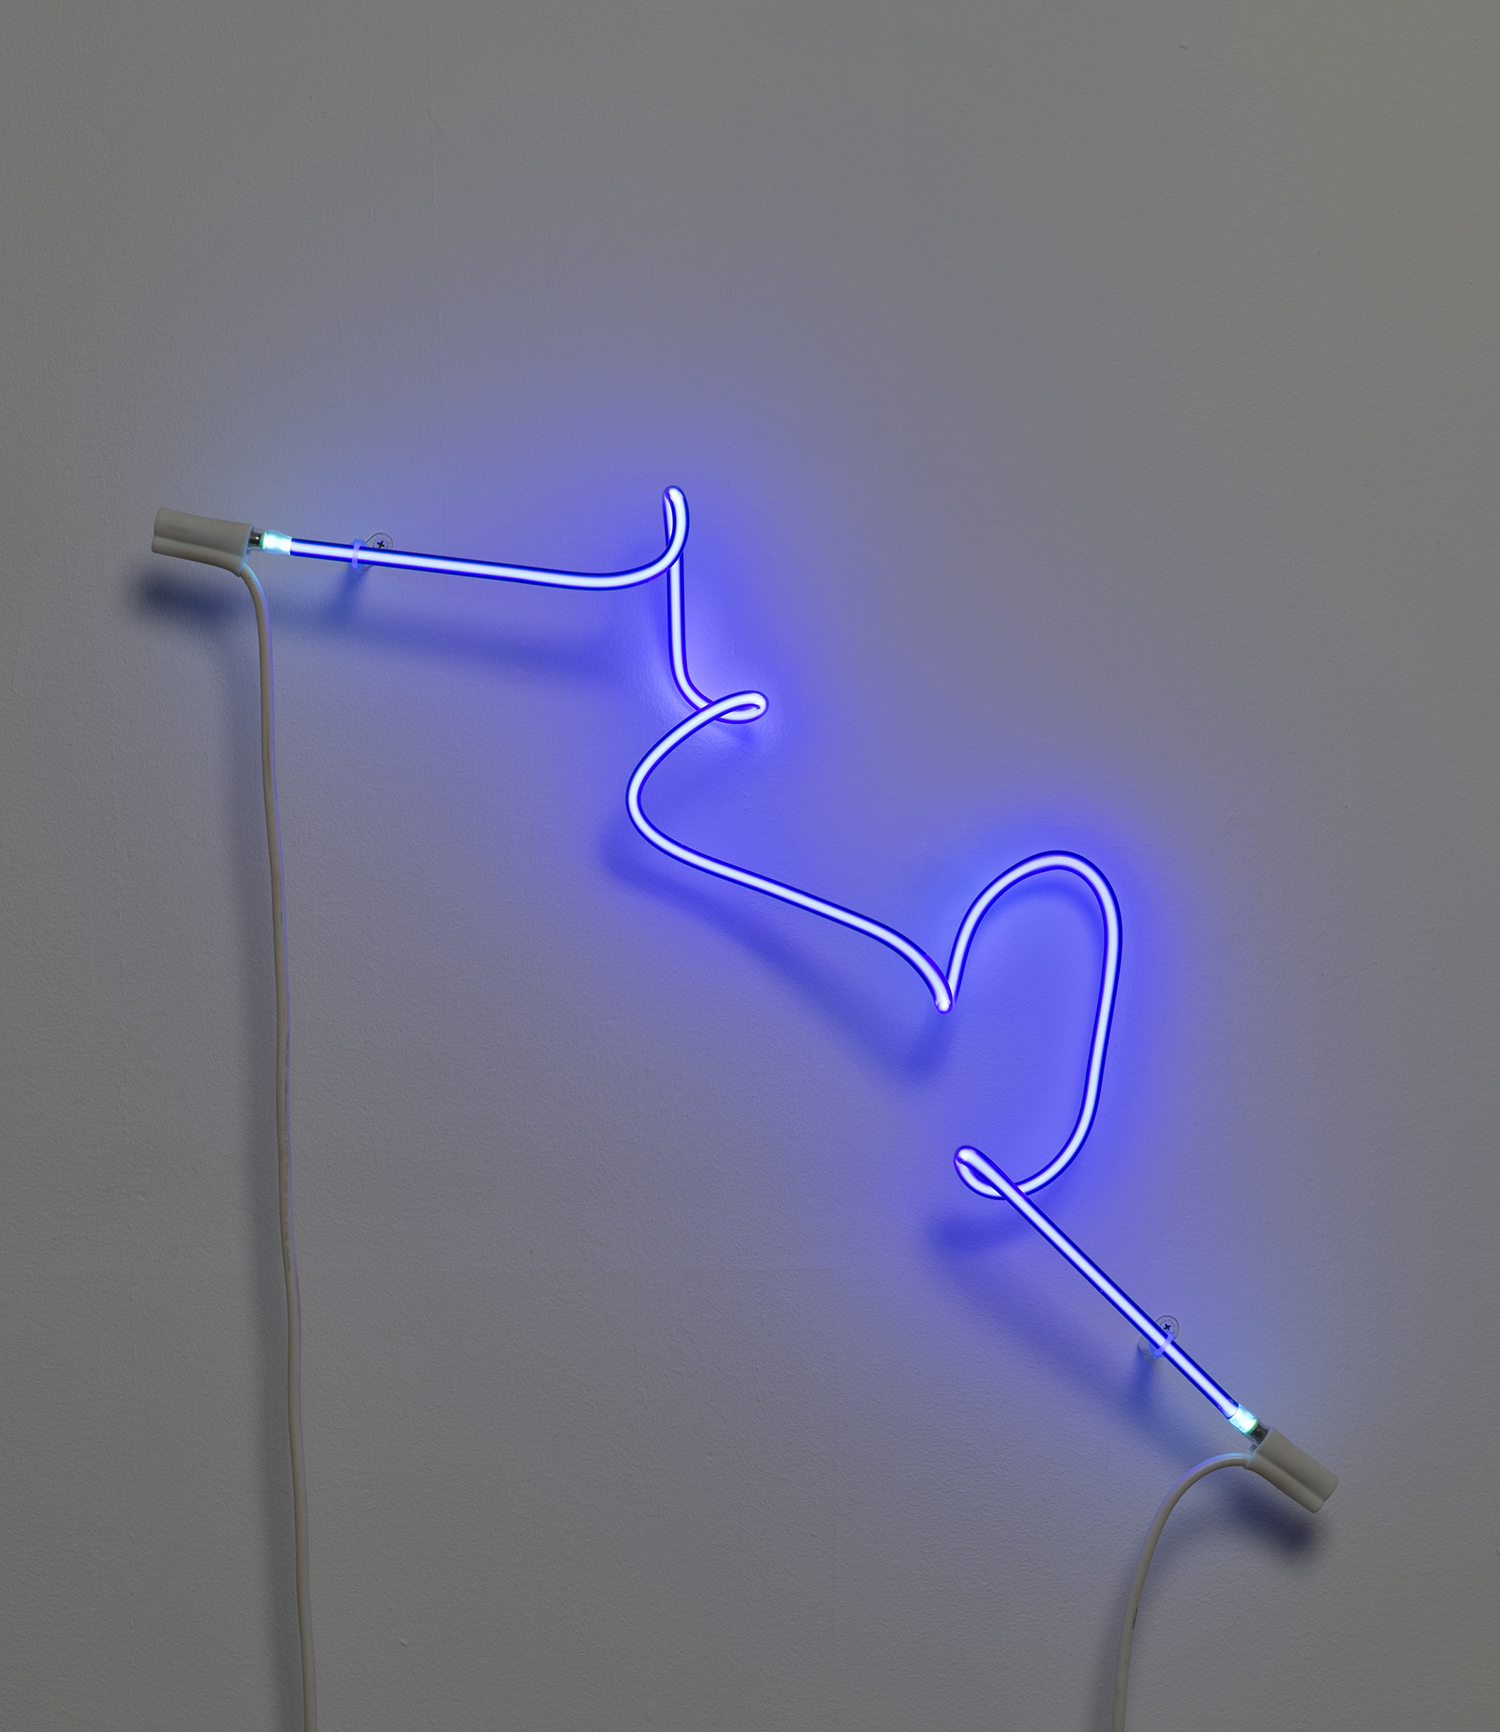 "JudyBlue, 2015 (phosphor coated glass, argon, wire), 35W"" x 5D"" x 8H"""